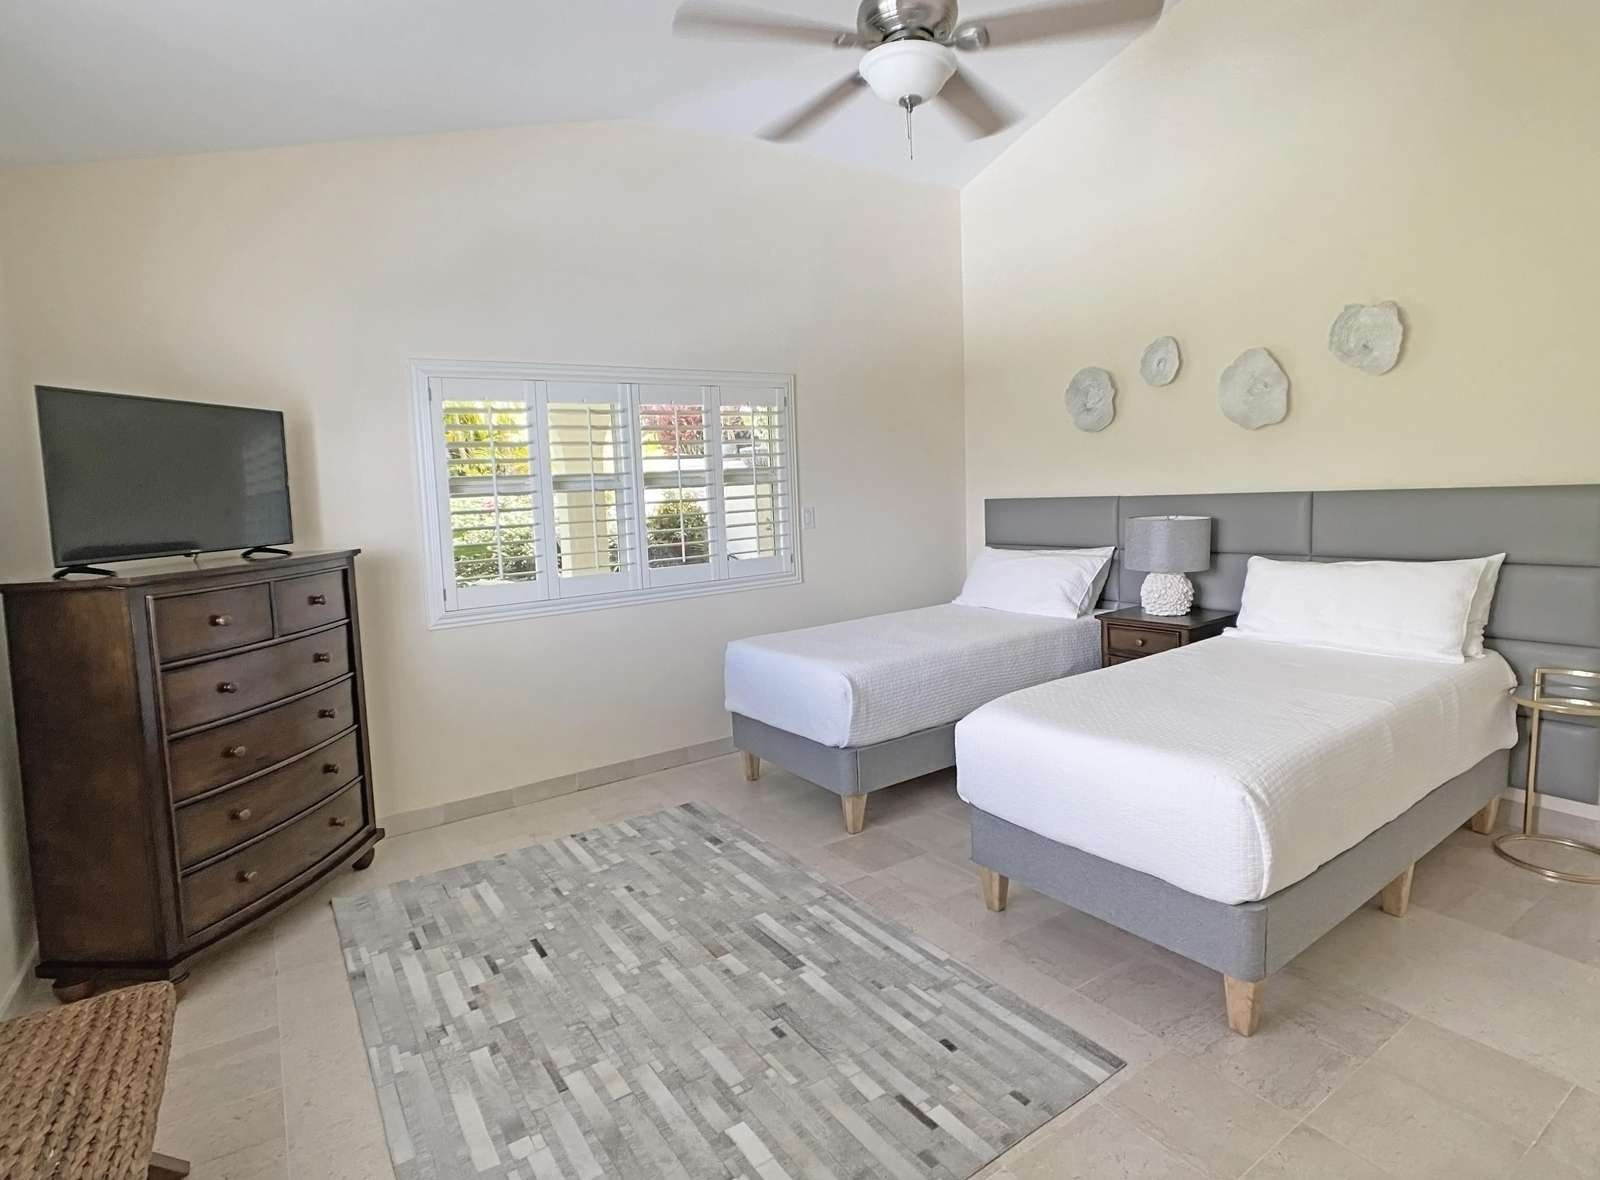 Garden Guest Room as arranged with 2 Twin XL Beds